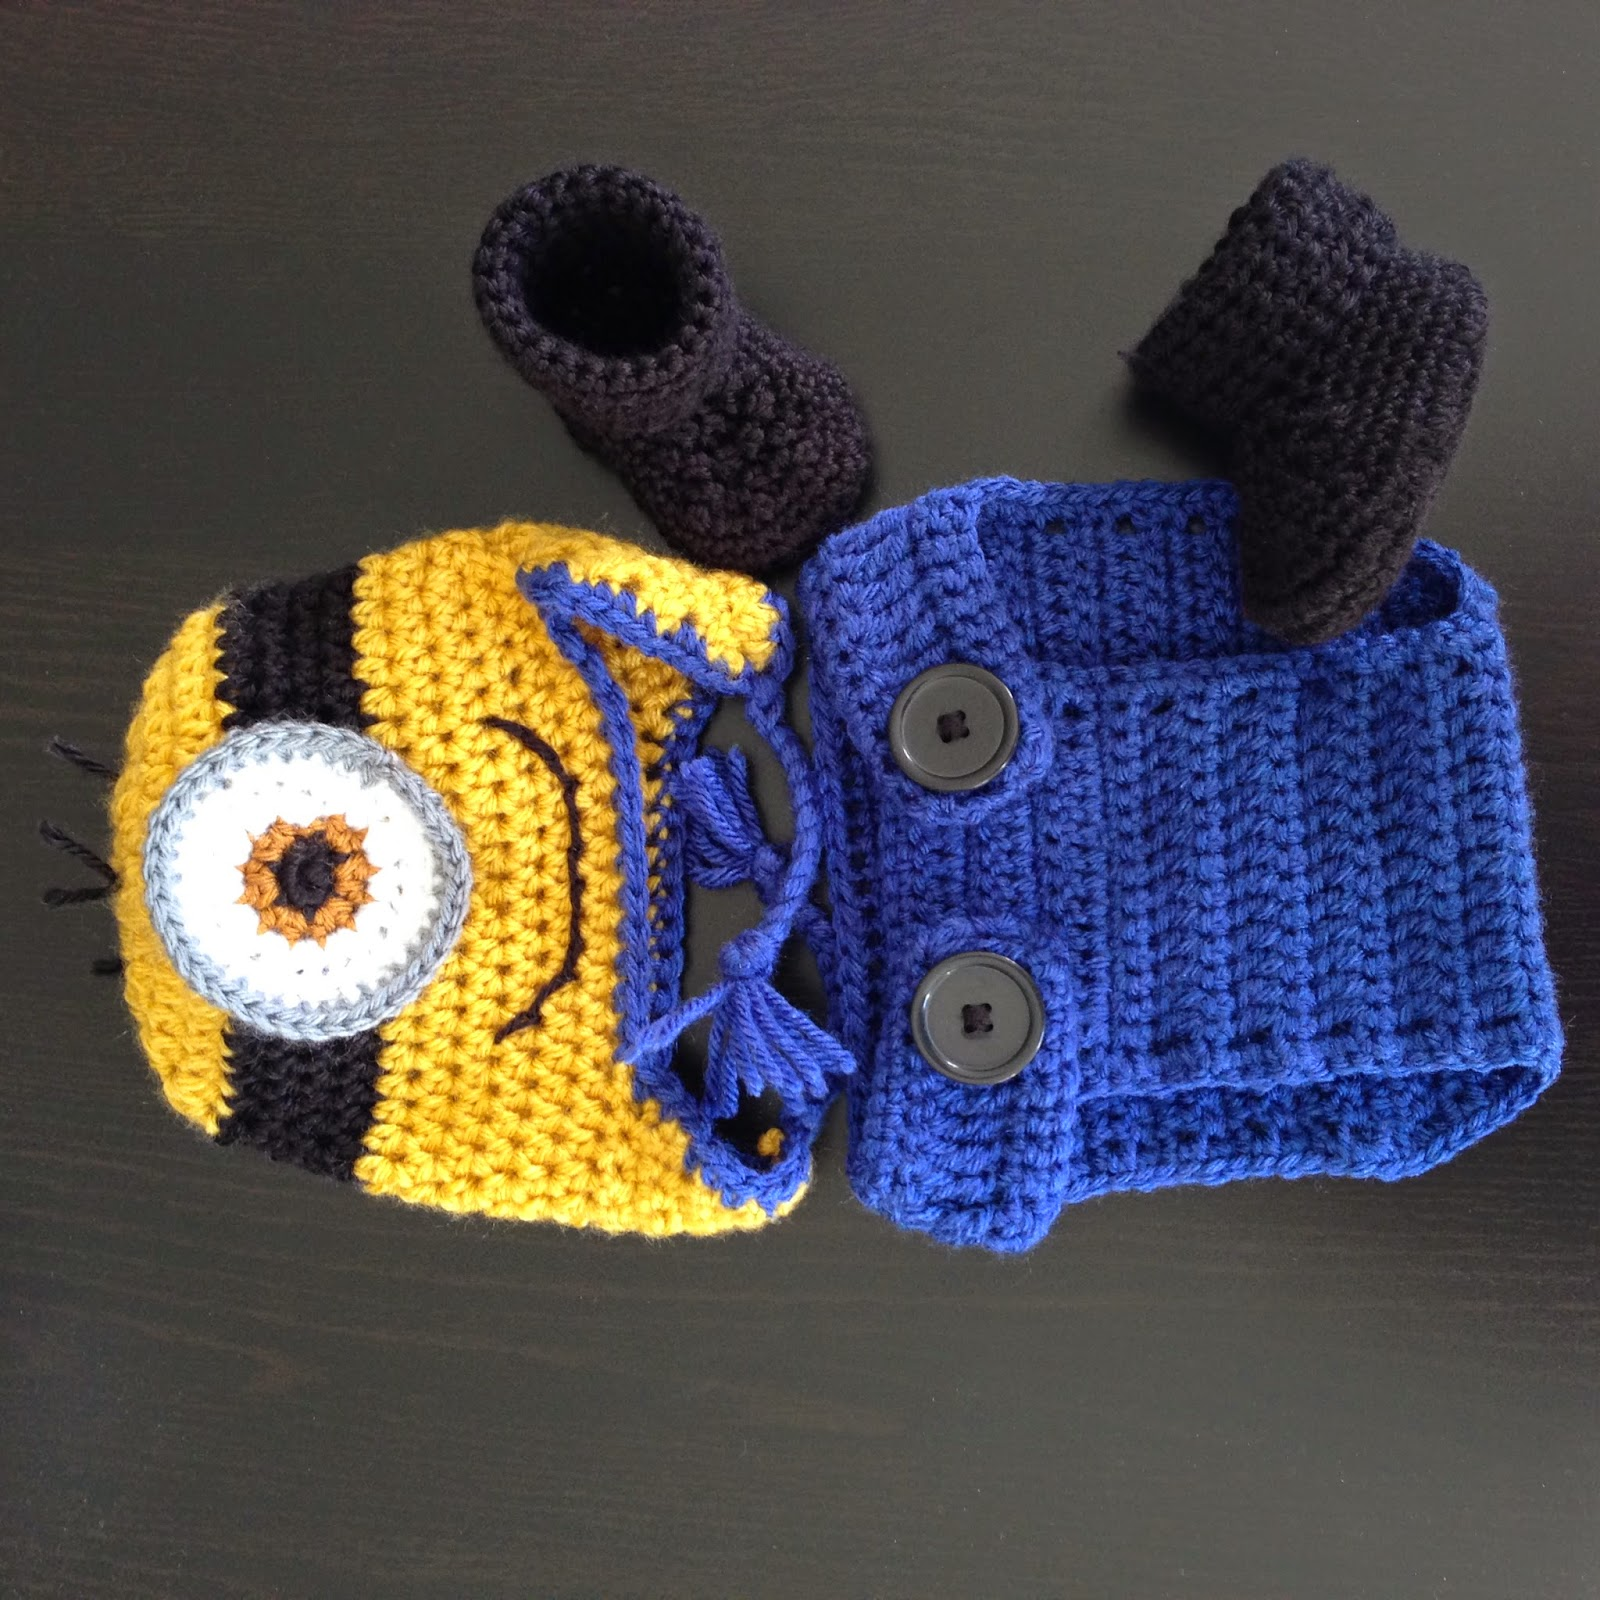 Free Crochet Pattern Minion Baby Booties : Random assortment: Handmade giftset - Minions!